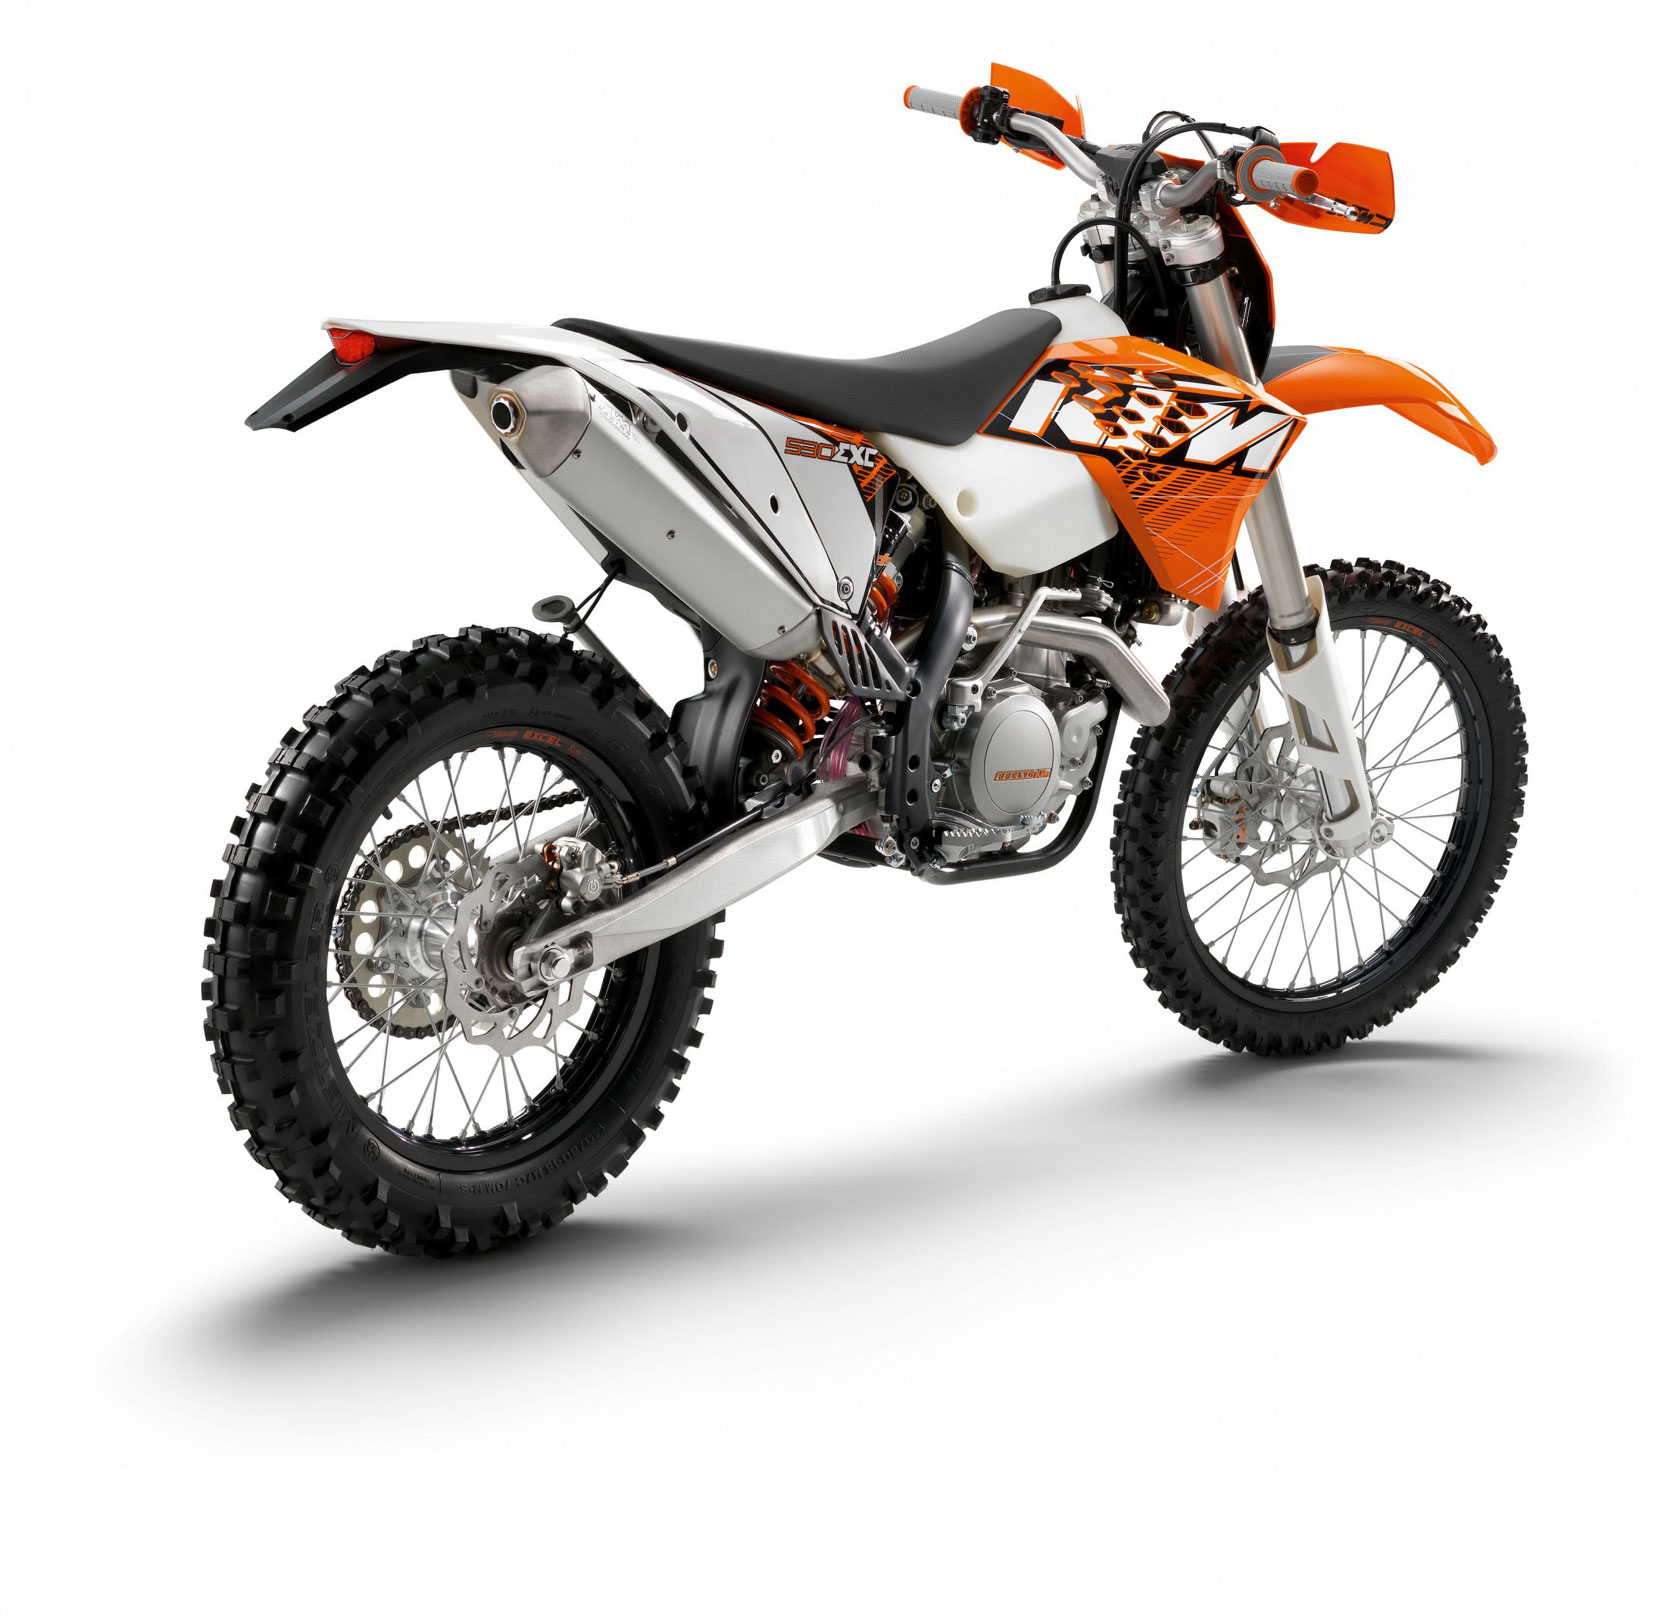 2010 Ktm 530 Exc-r  Pics  Specs And Information